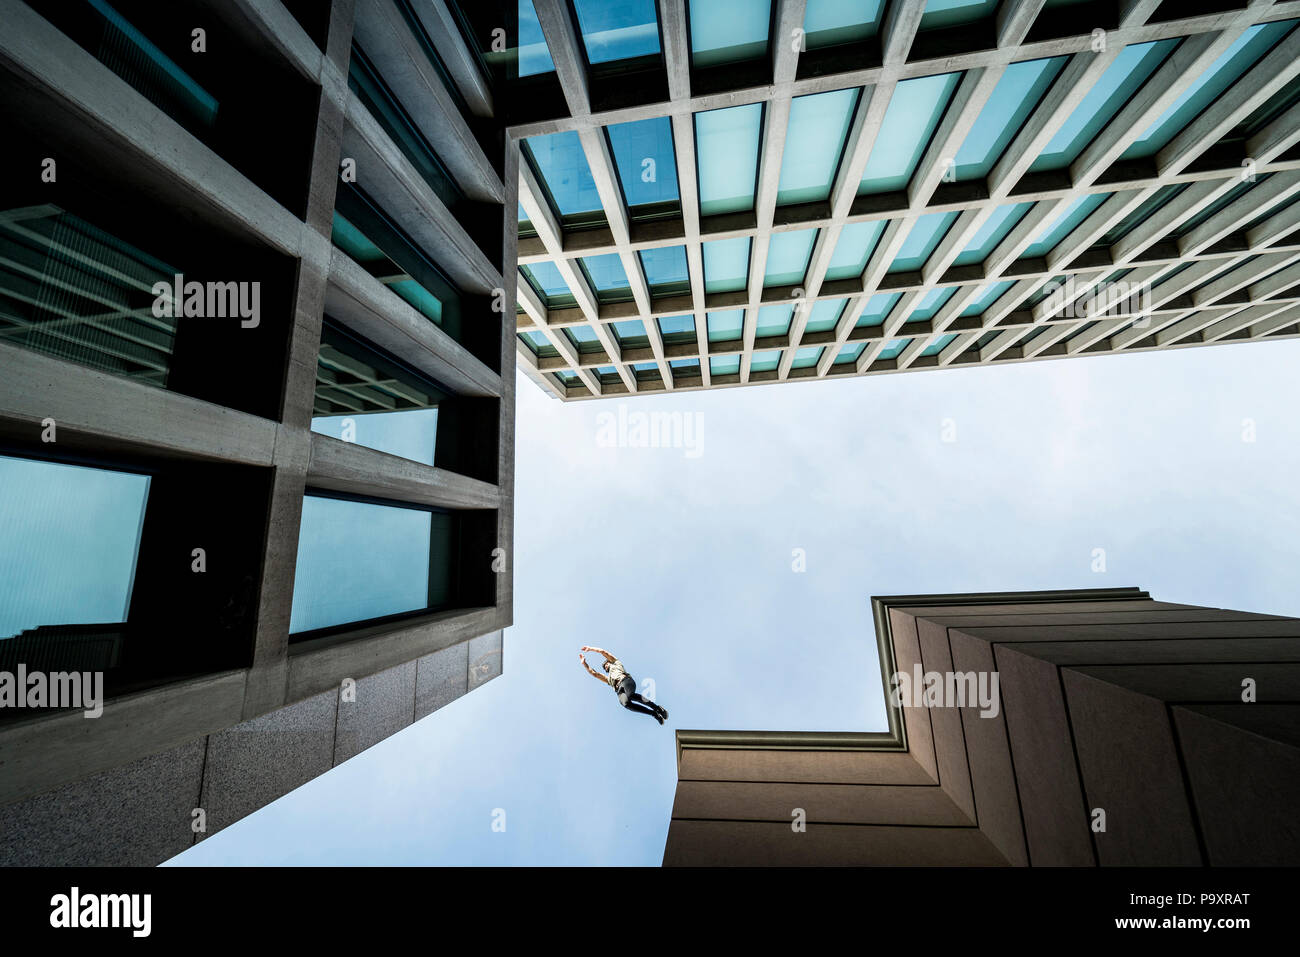 View from below of male parkour athlete jumping from one roof to another - Stock Image